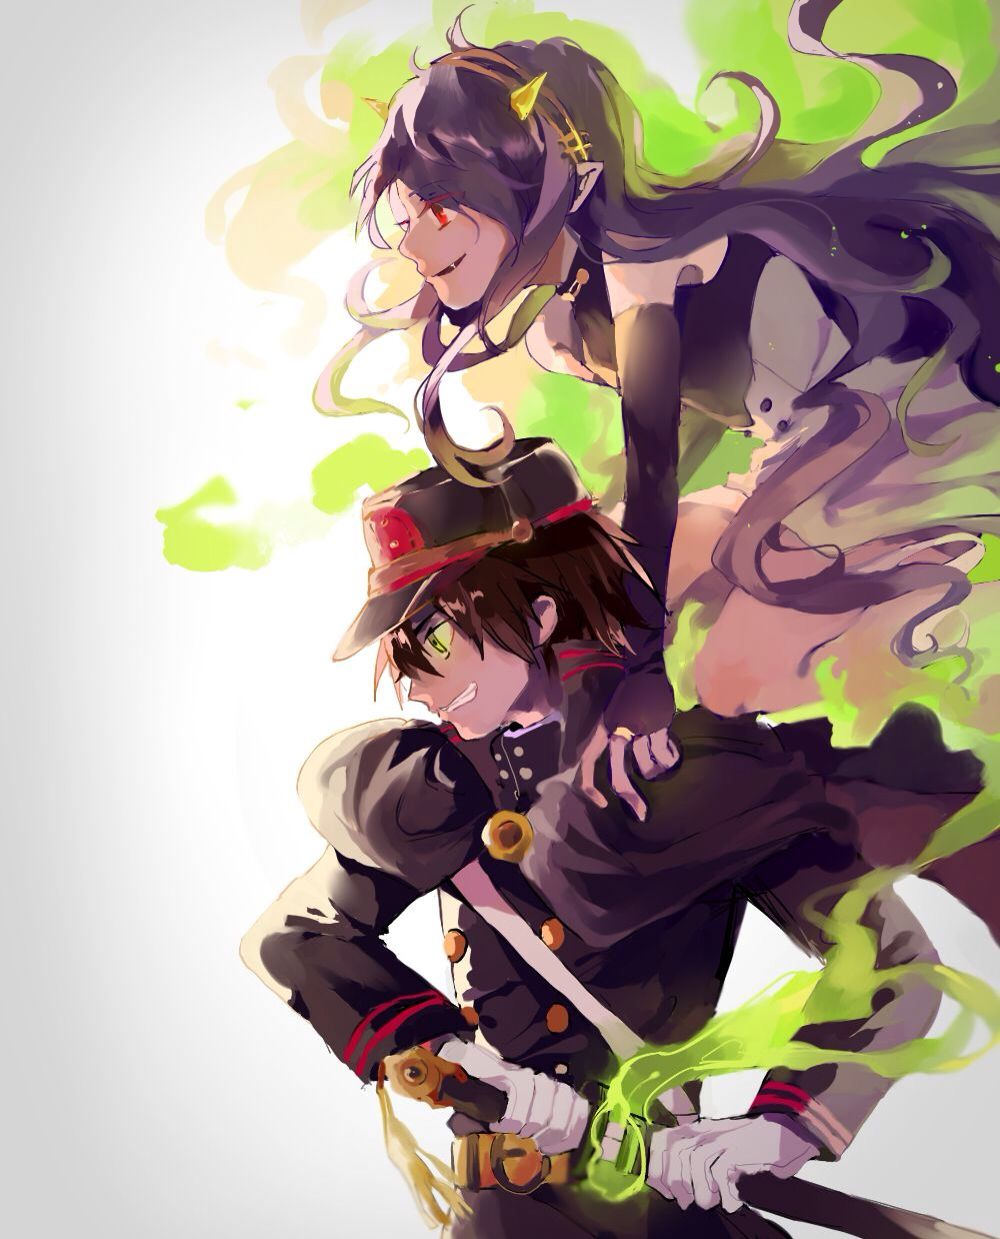 Yu and his cursed weapon Owari no seraph, Seraph of the